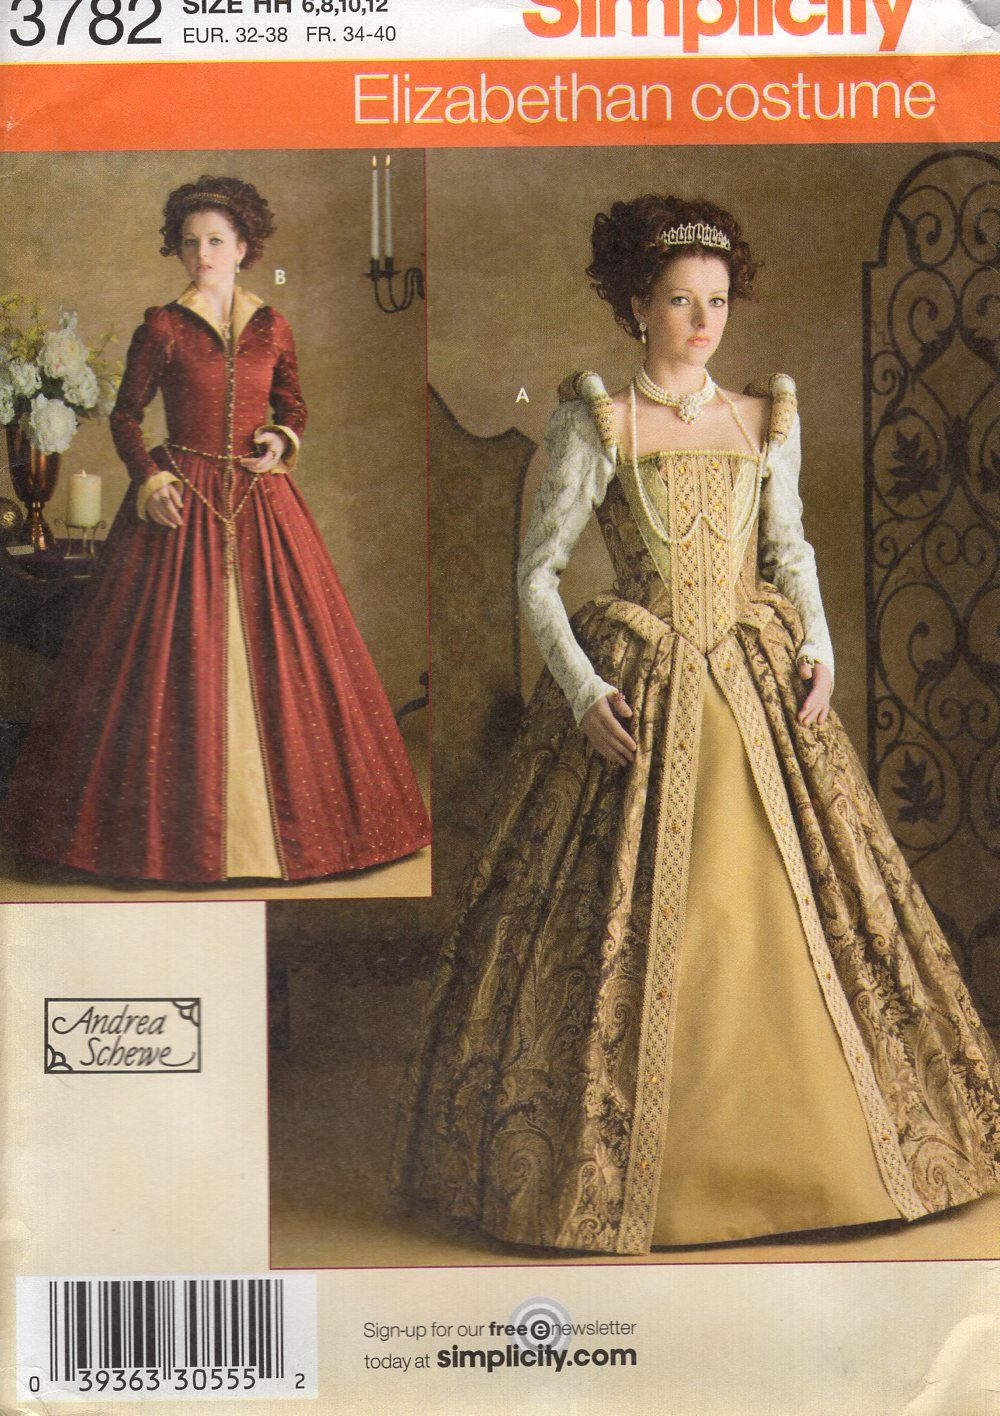 Free Us Ship Simplicity 3782 Sewing Pattern Elizabethan Tudor ...